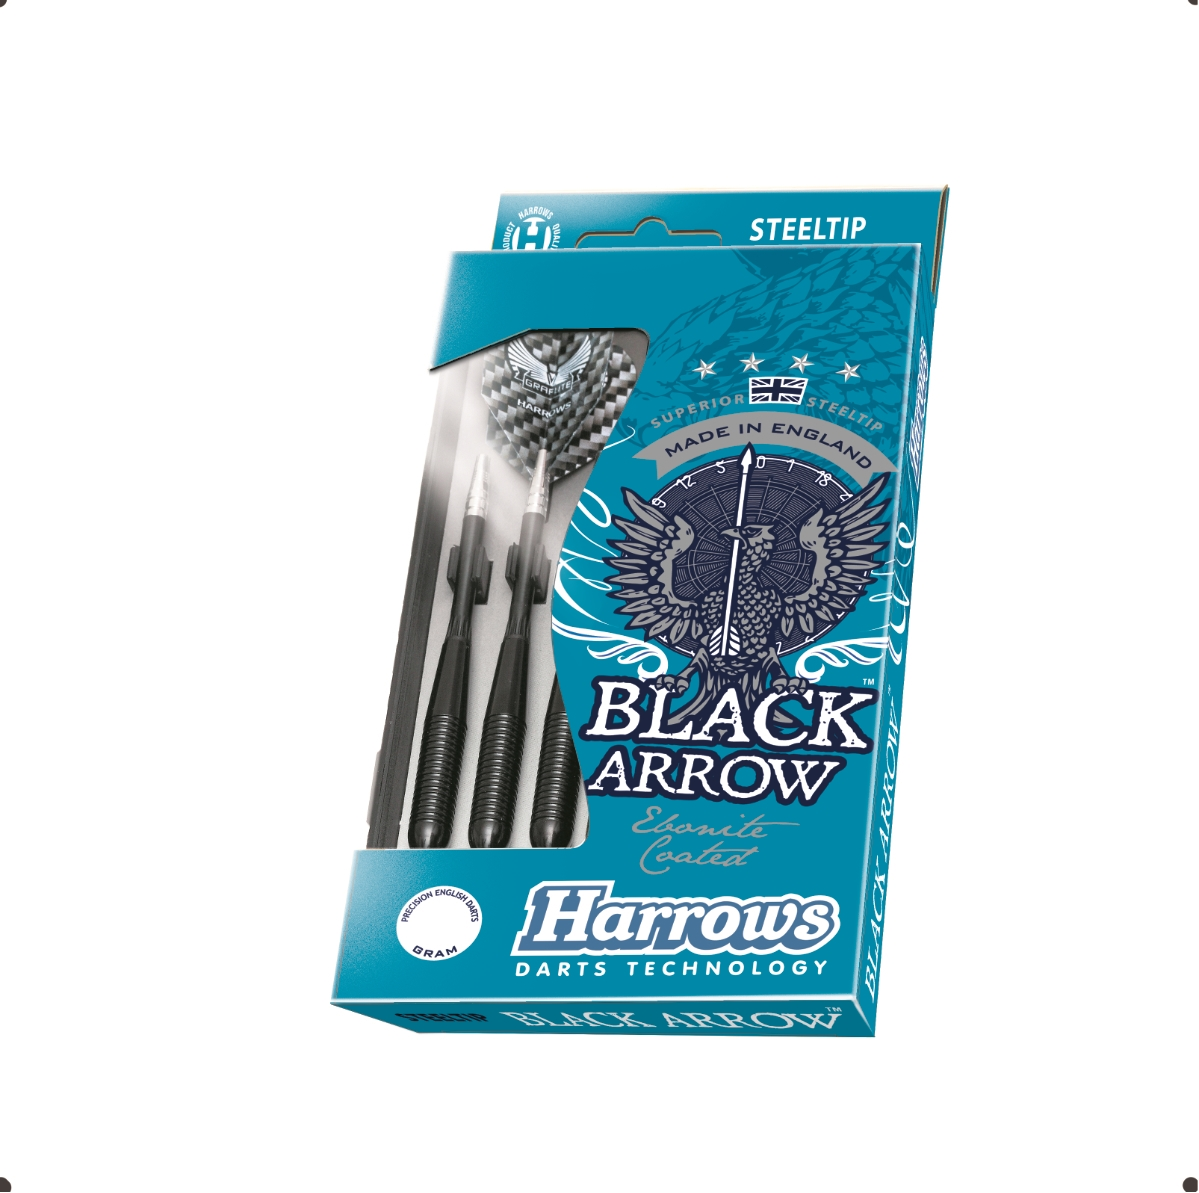 HARROWS rzutka dart BLACK ARROW steeltip 22gR